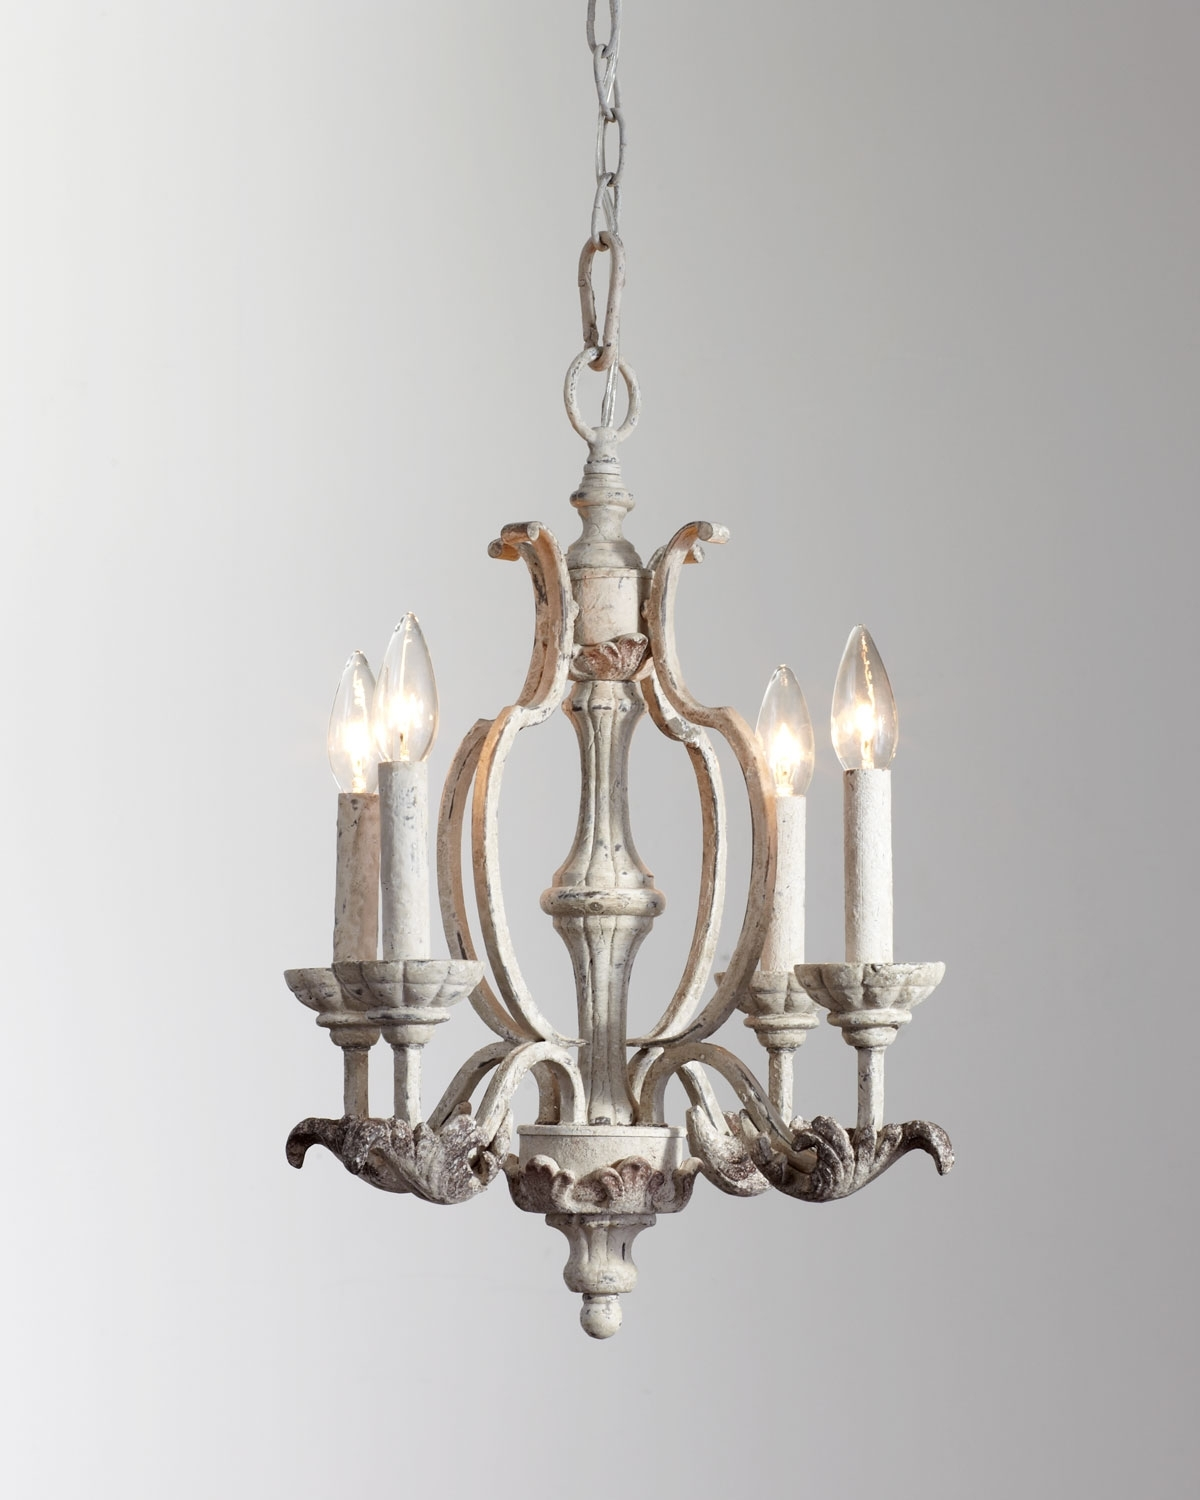 Small Bronze Chandelier With Regard To Most Popular Chandelier: Excellent Small Chandeliers Mini Chandelier For Lockers (View 13 of 15)